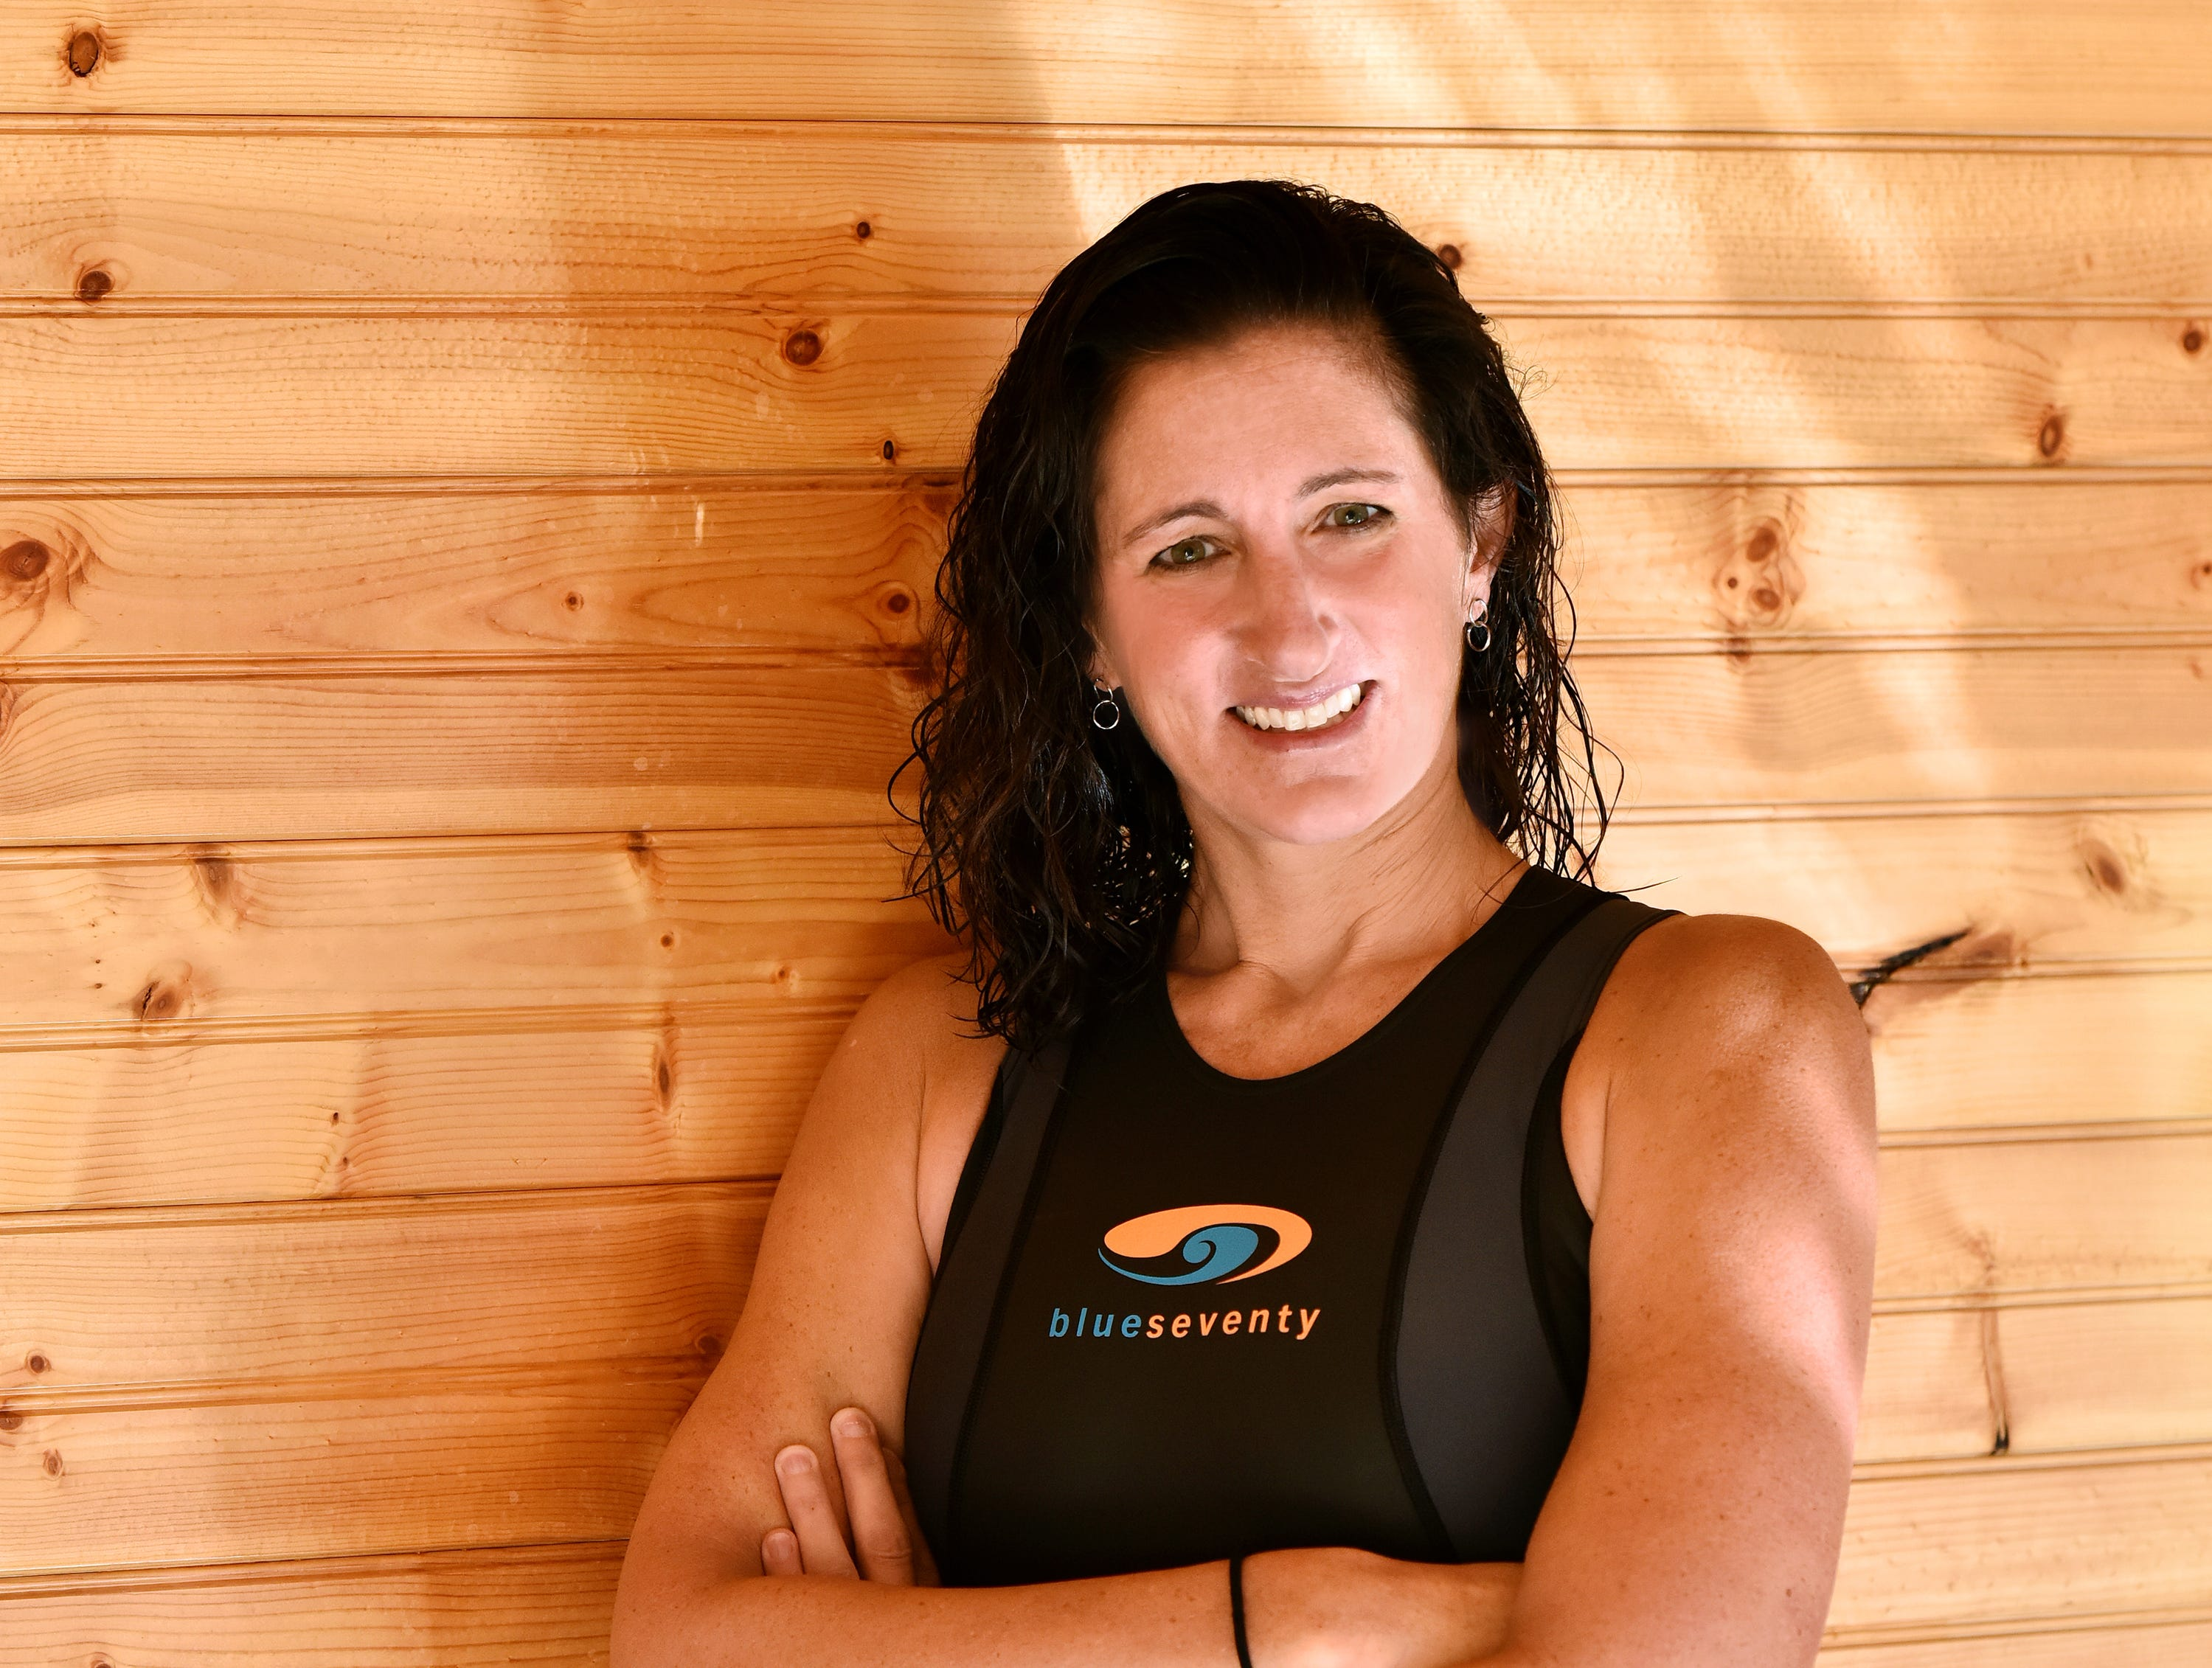 Katie Malone is a triathlete and teaches swimming in her indoor pool.